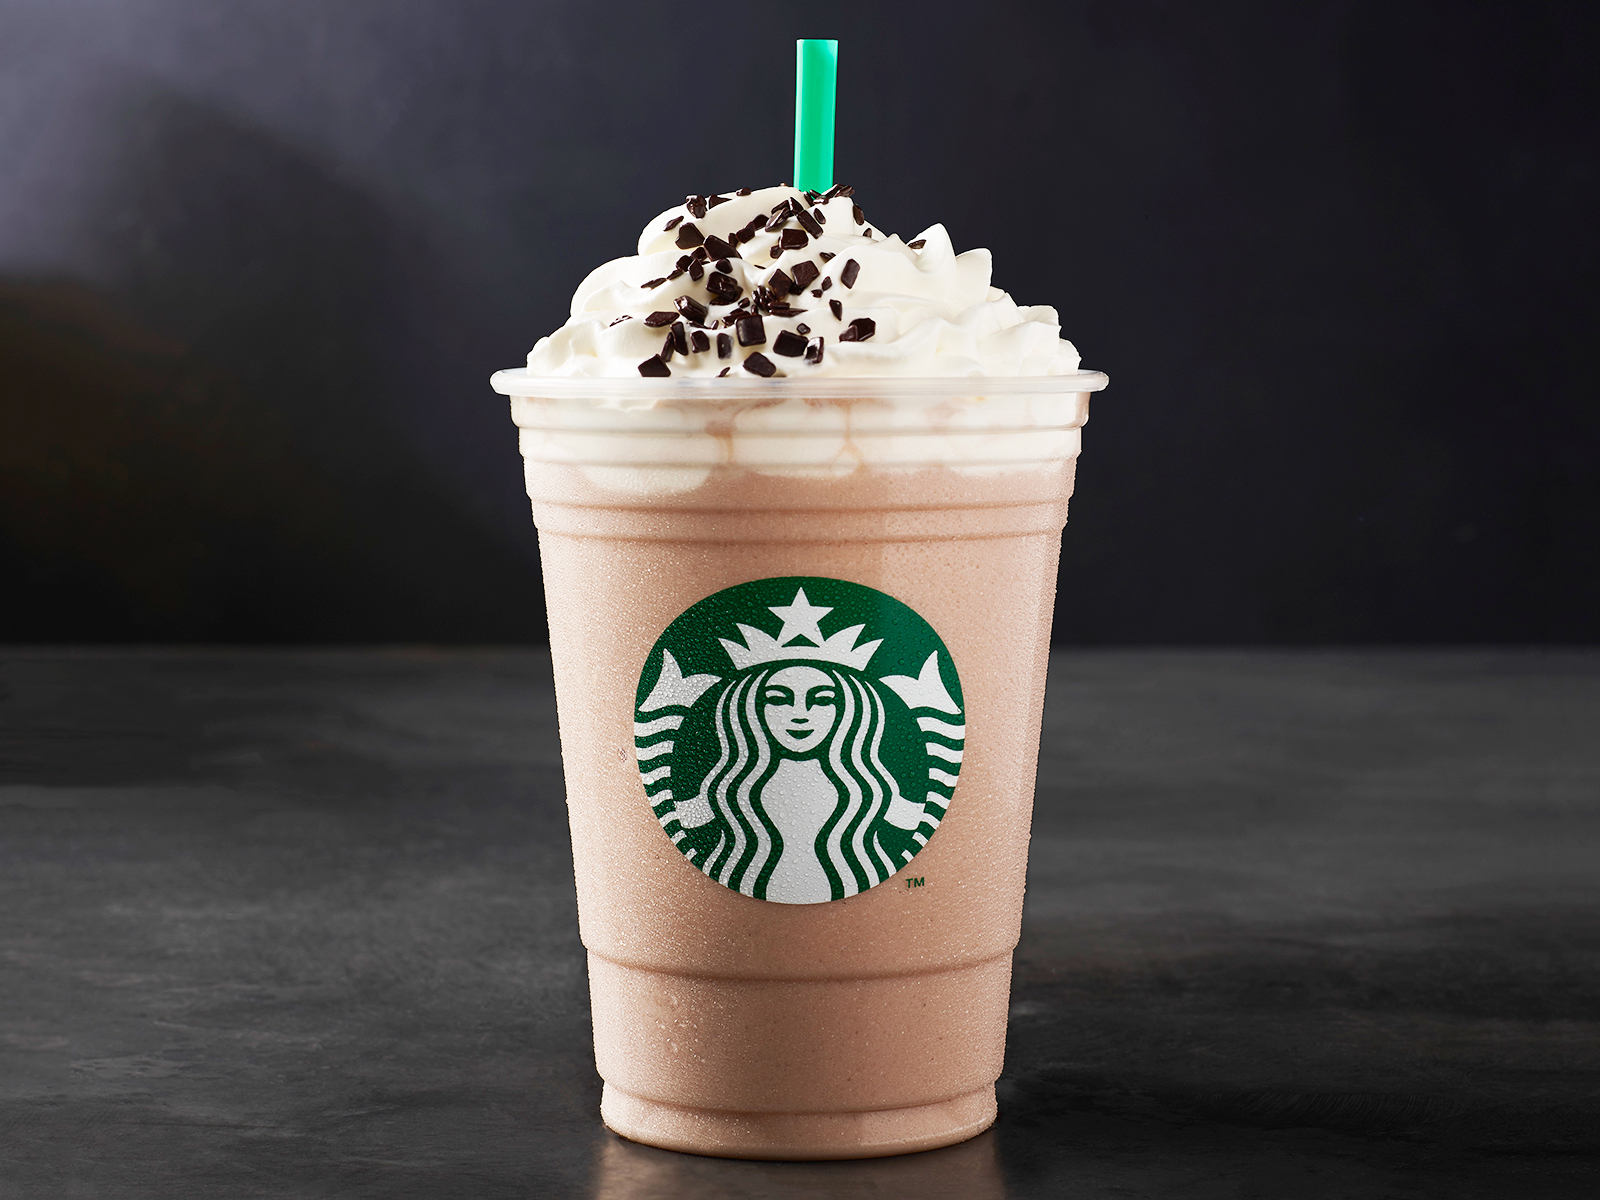 starbucks-black-and-white-mocha-frappuccino-ft-blog1217.jpg